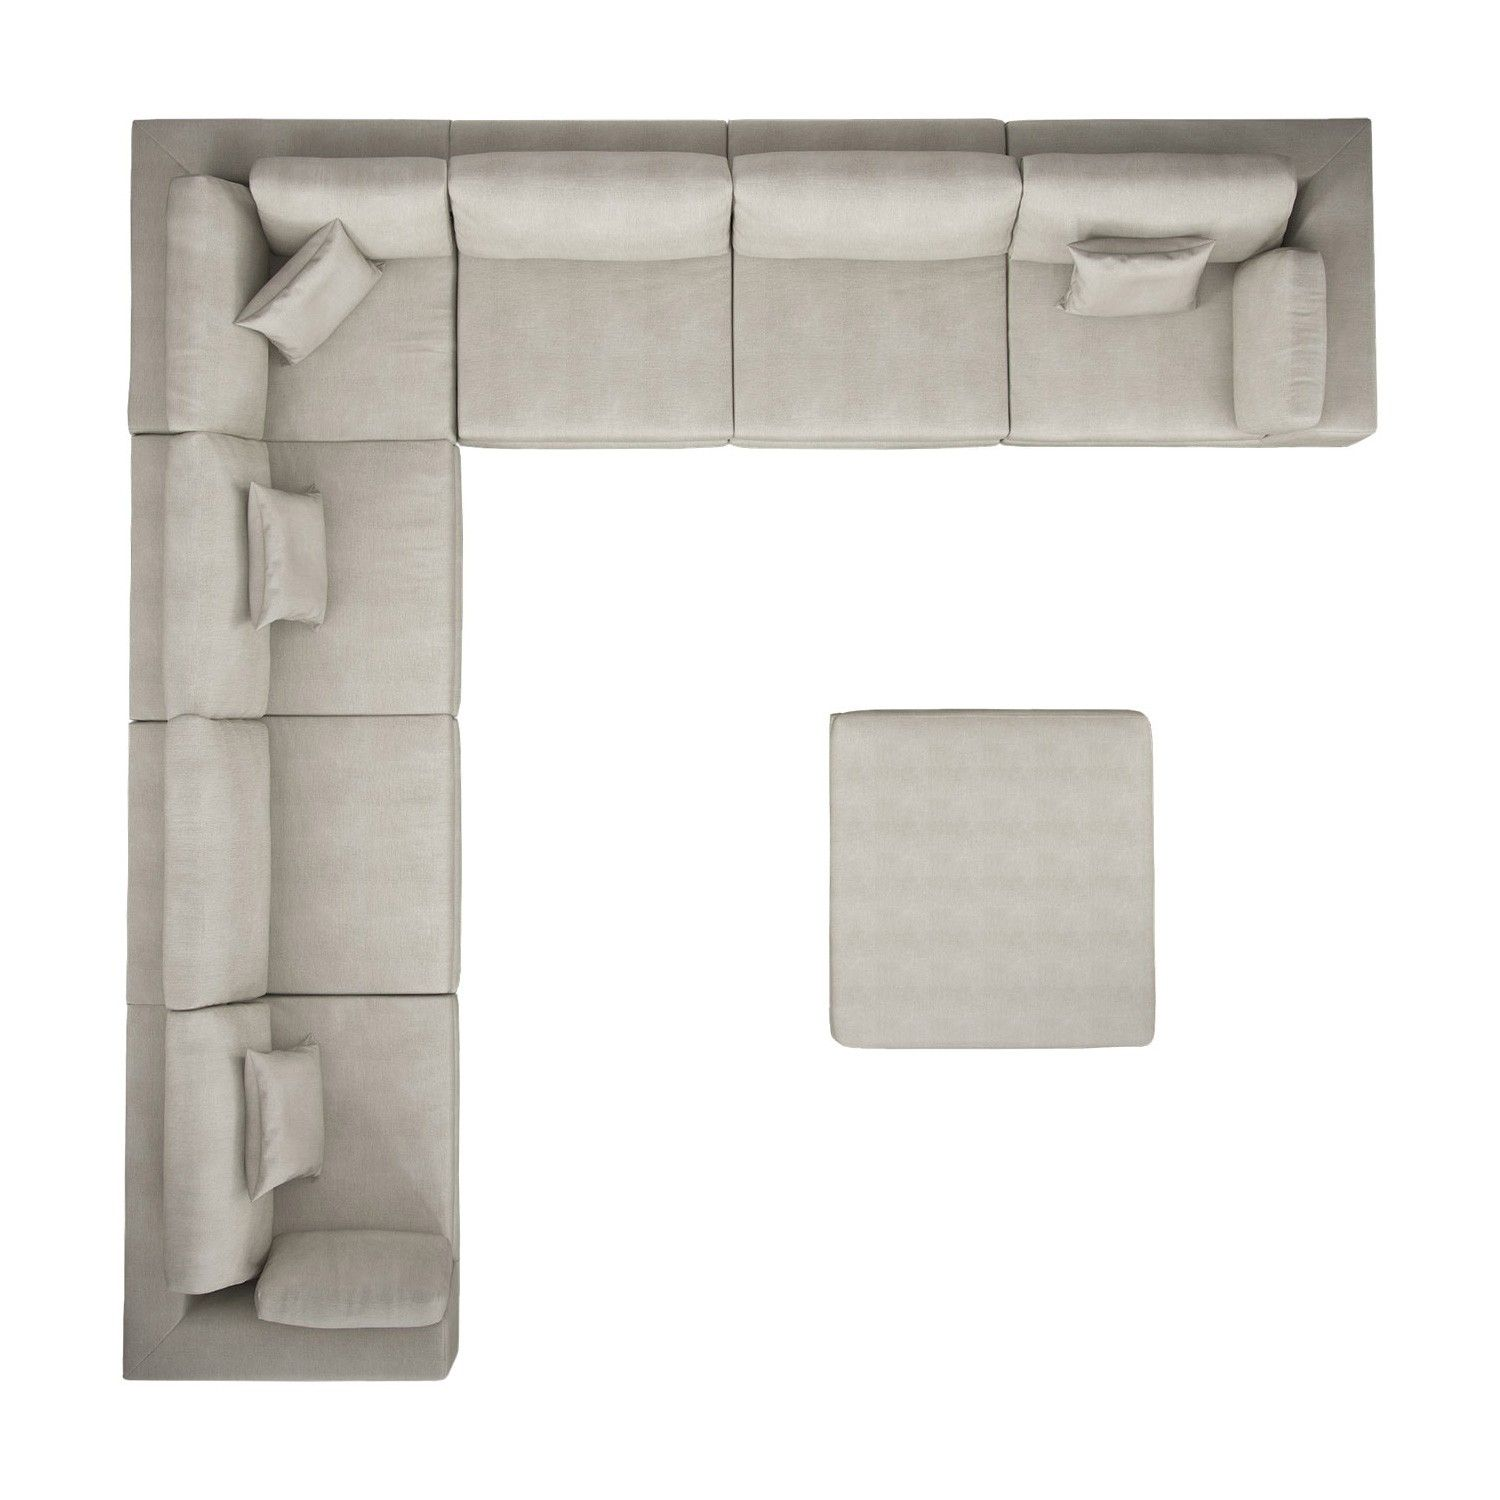 Perry Sectional Large 2 Arm Corner Sofa With Ottoman Sofa Set Designs Corner Sofa With Ottoman Corner Sectional Sofa